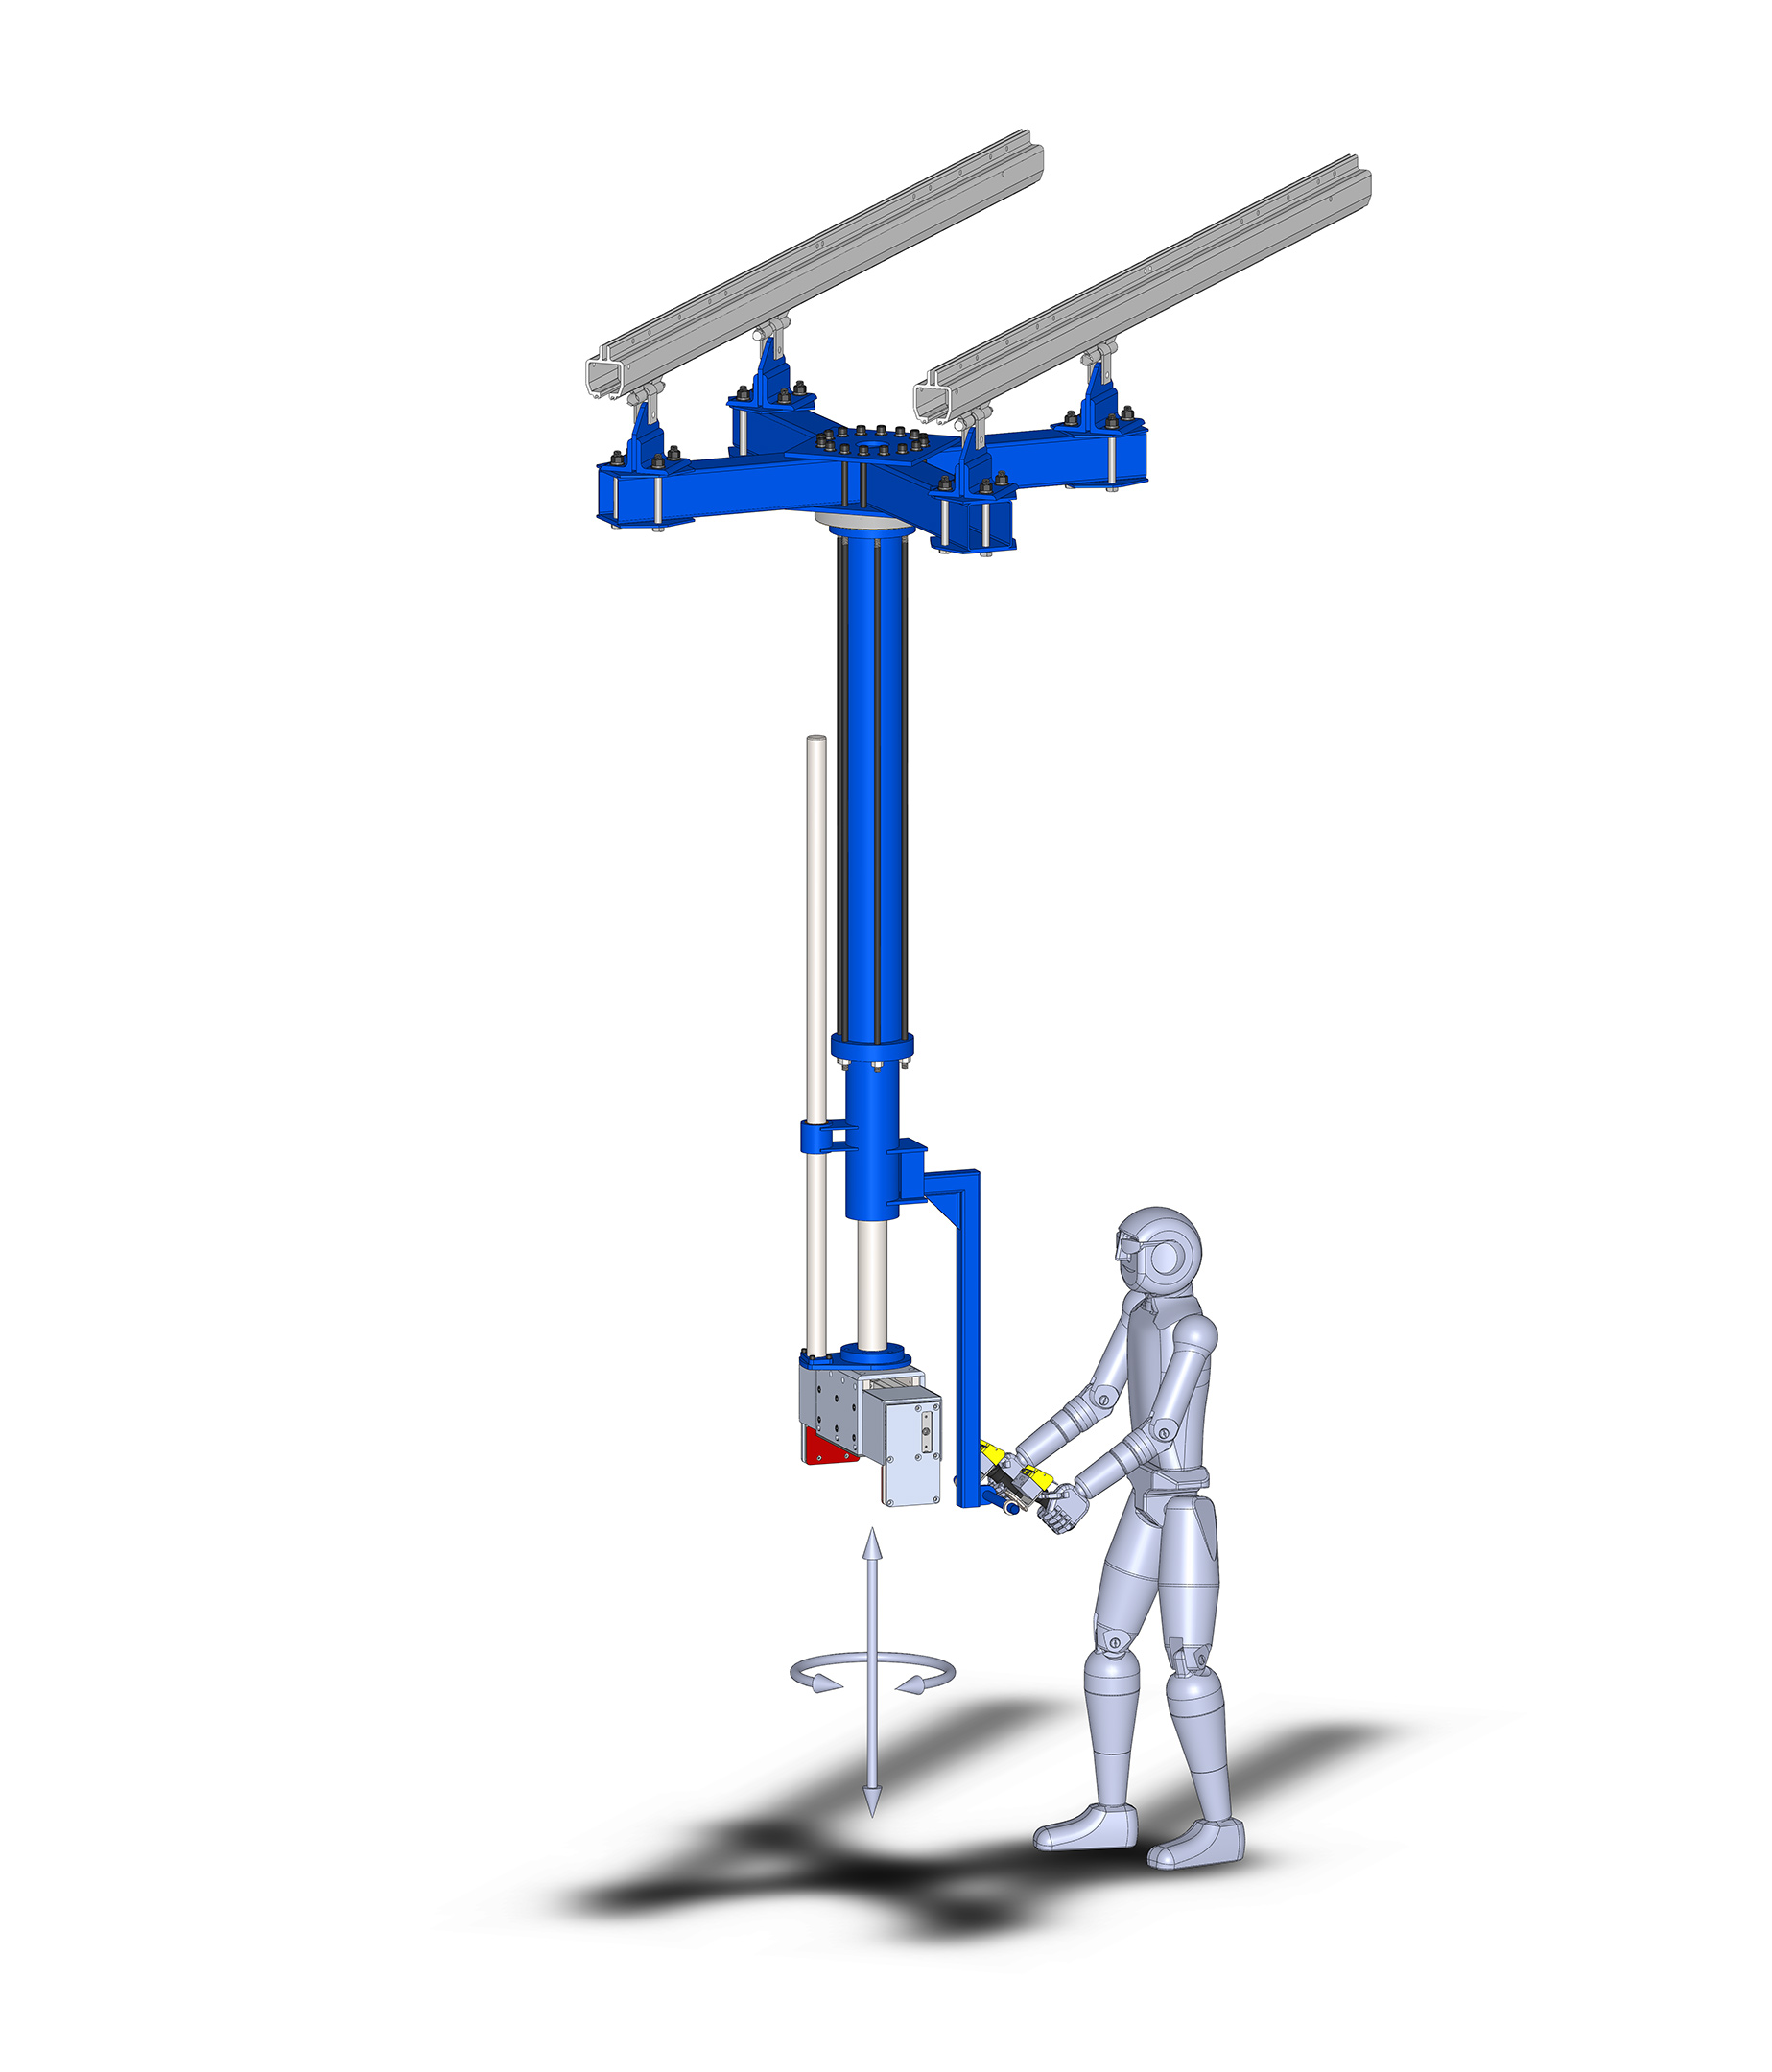 Vertical Lift Devices : Manipulator arms hydraulic pneumatic vertical lifters